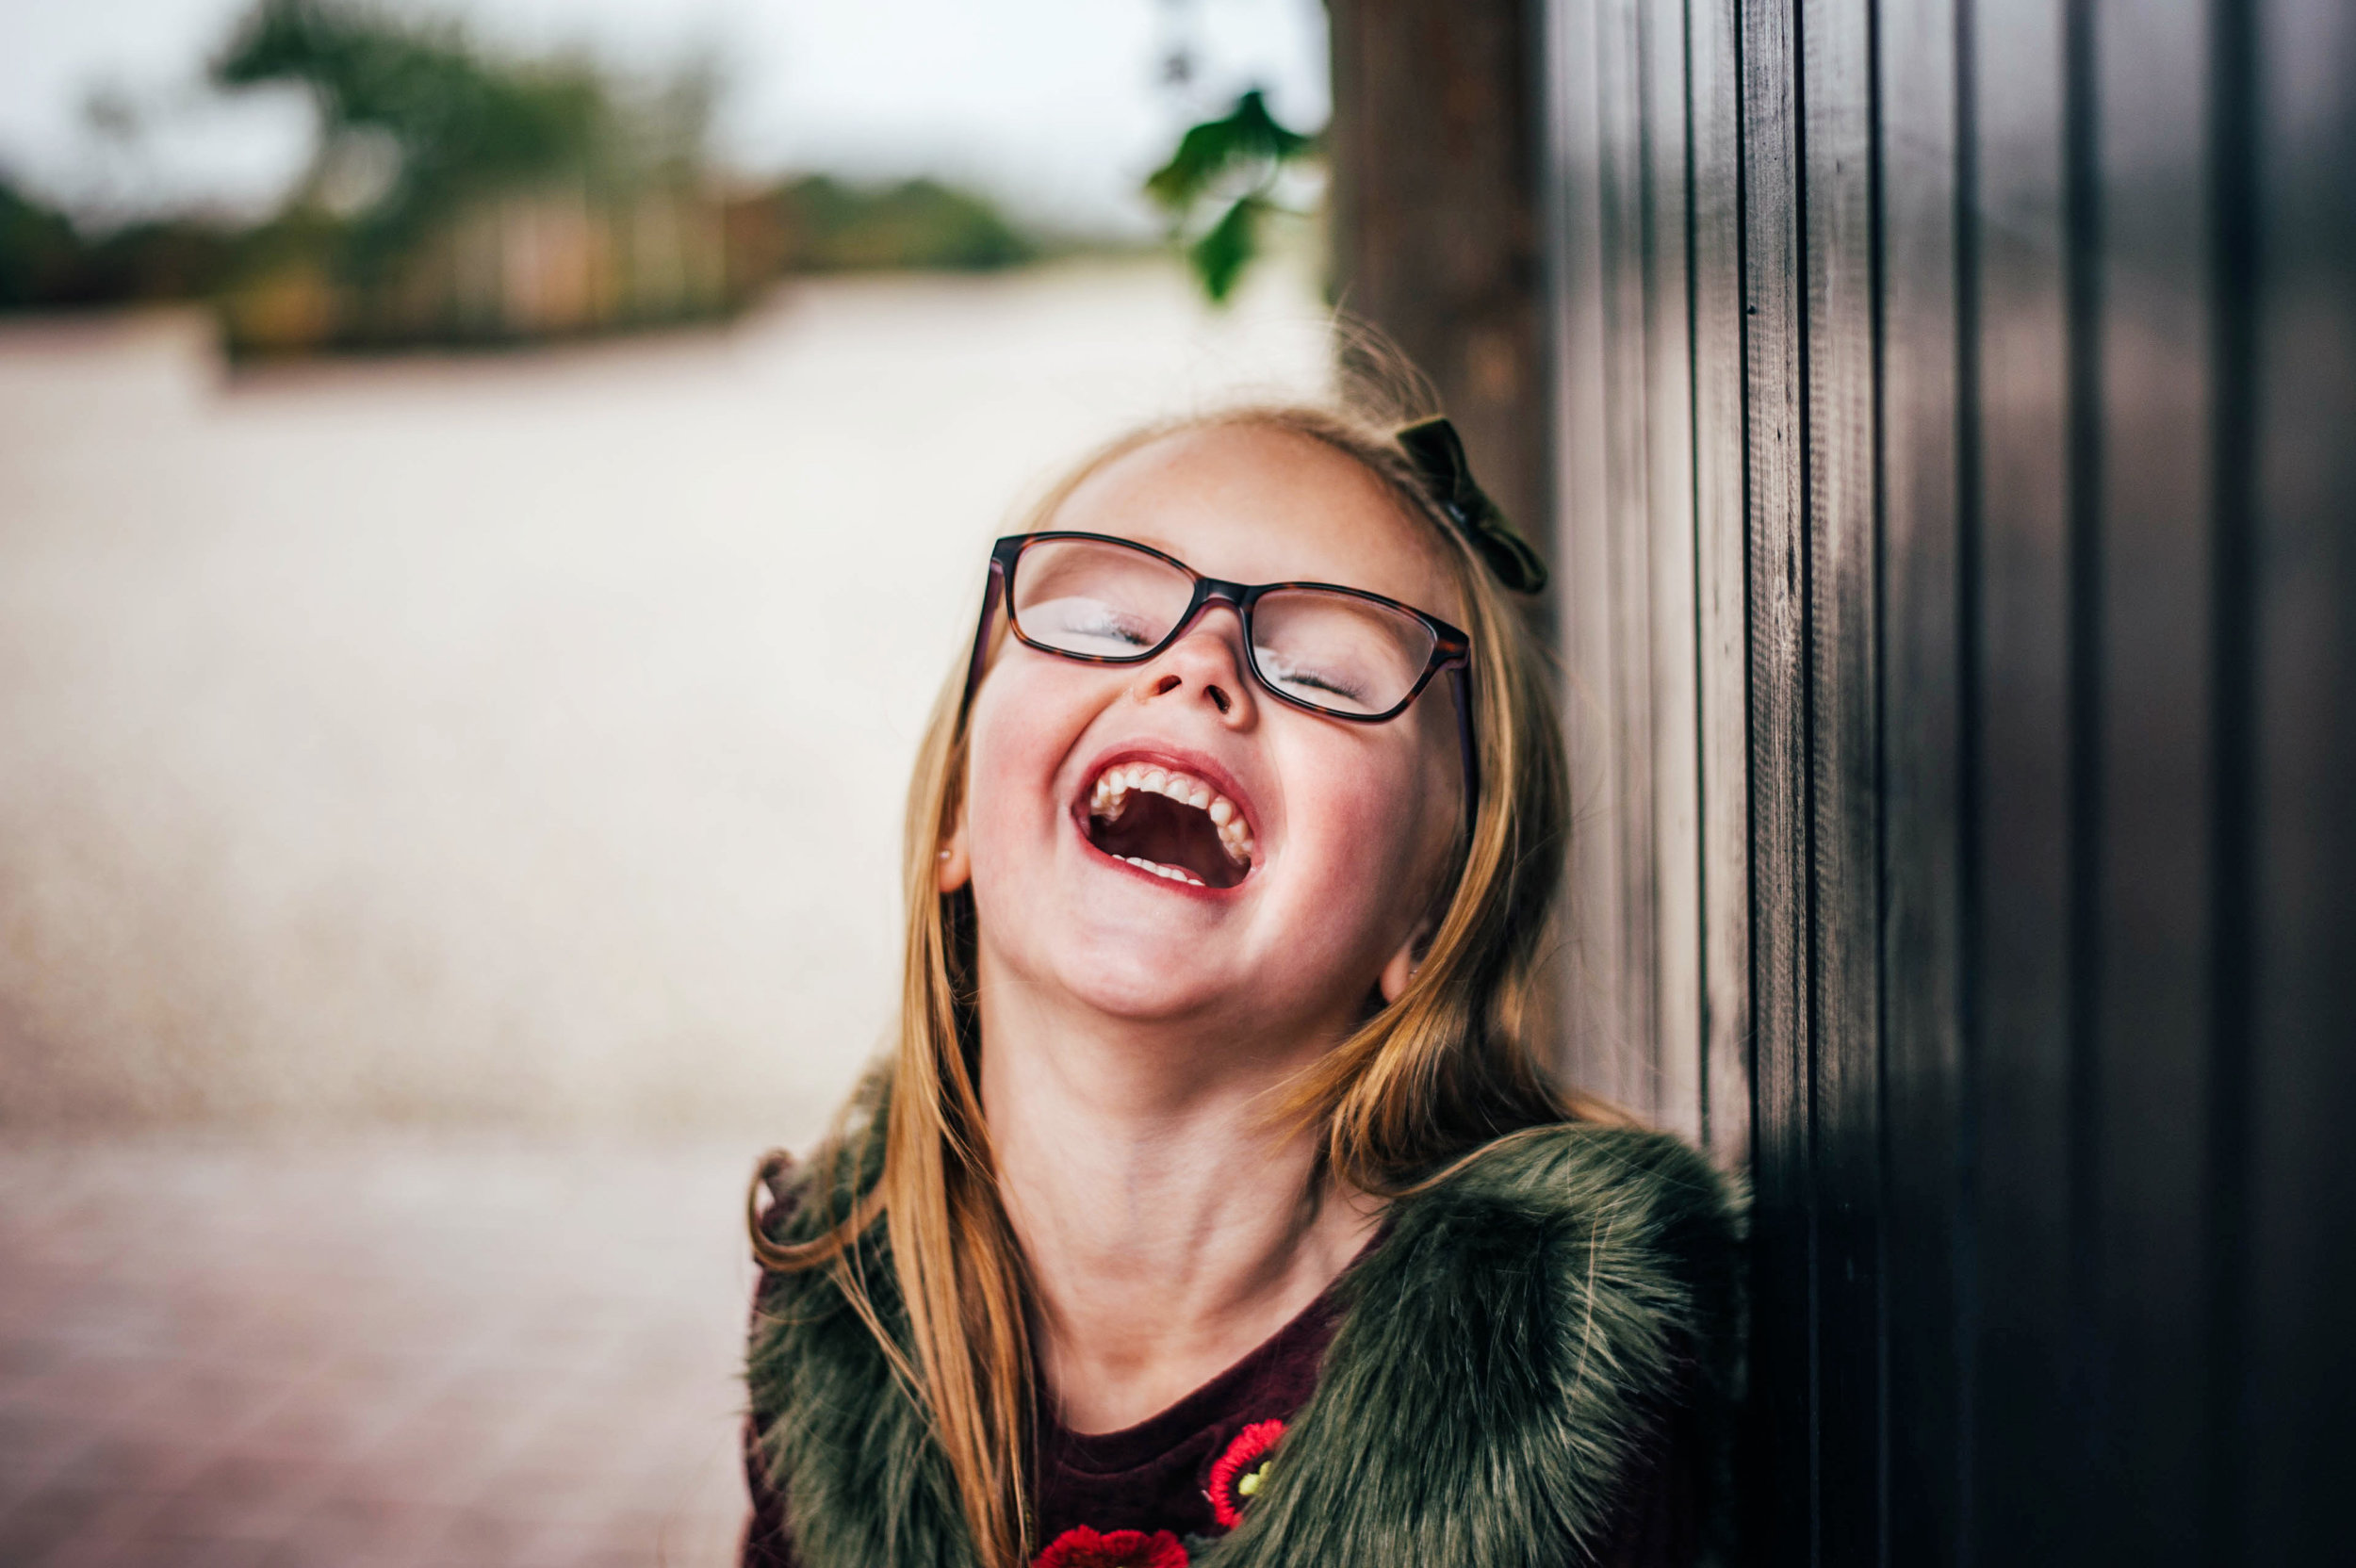 Young girl in glasses laughs Essex UK Family Childhood Portrait Documentary Photographer